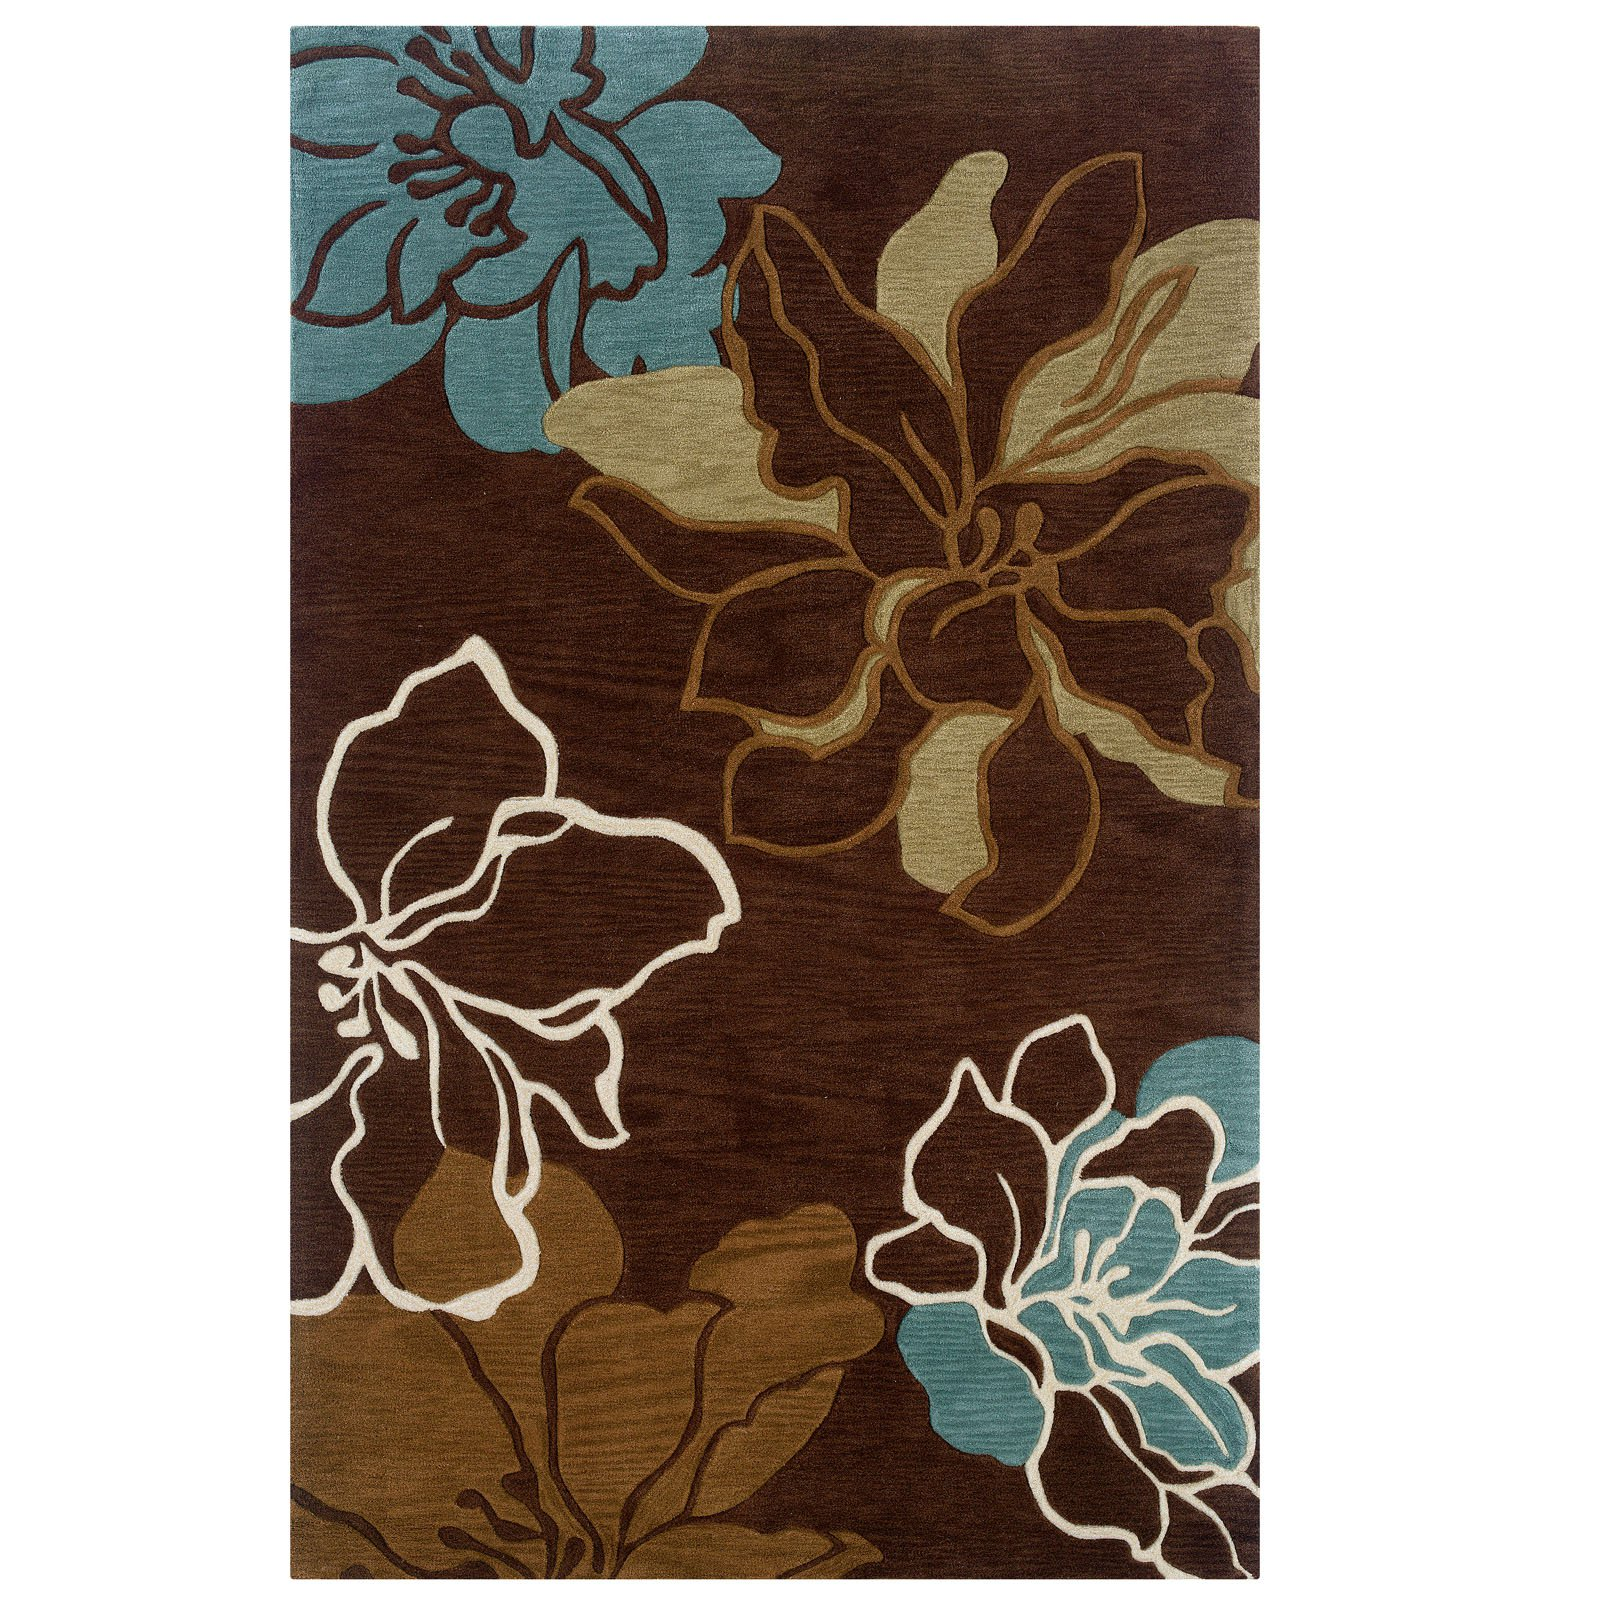 Contemporary Hand Tufted Area Rugs (2 ft. 10 in. L x 1 ft. 10 in. W (4 lbs.))